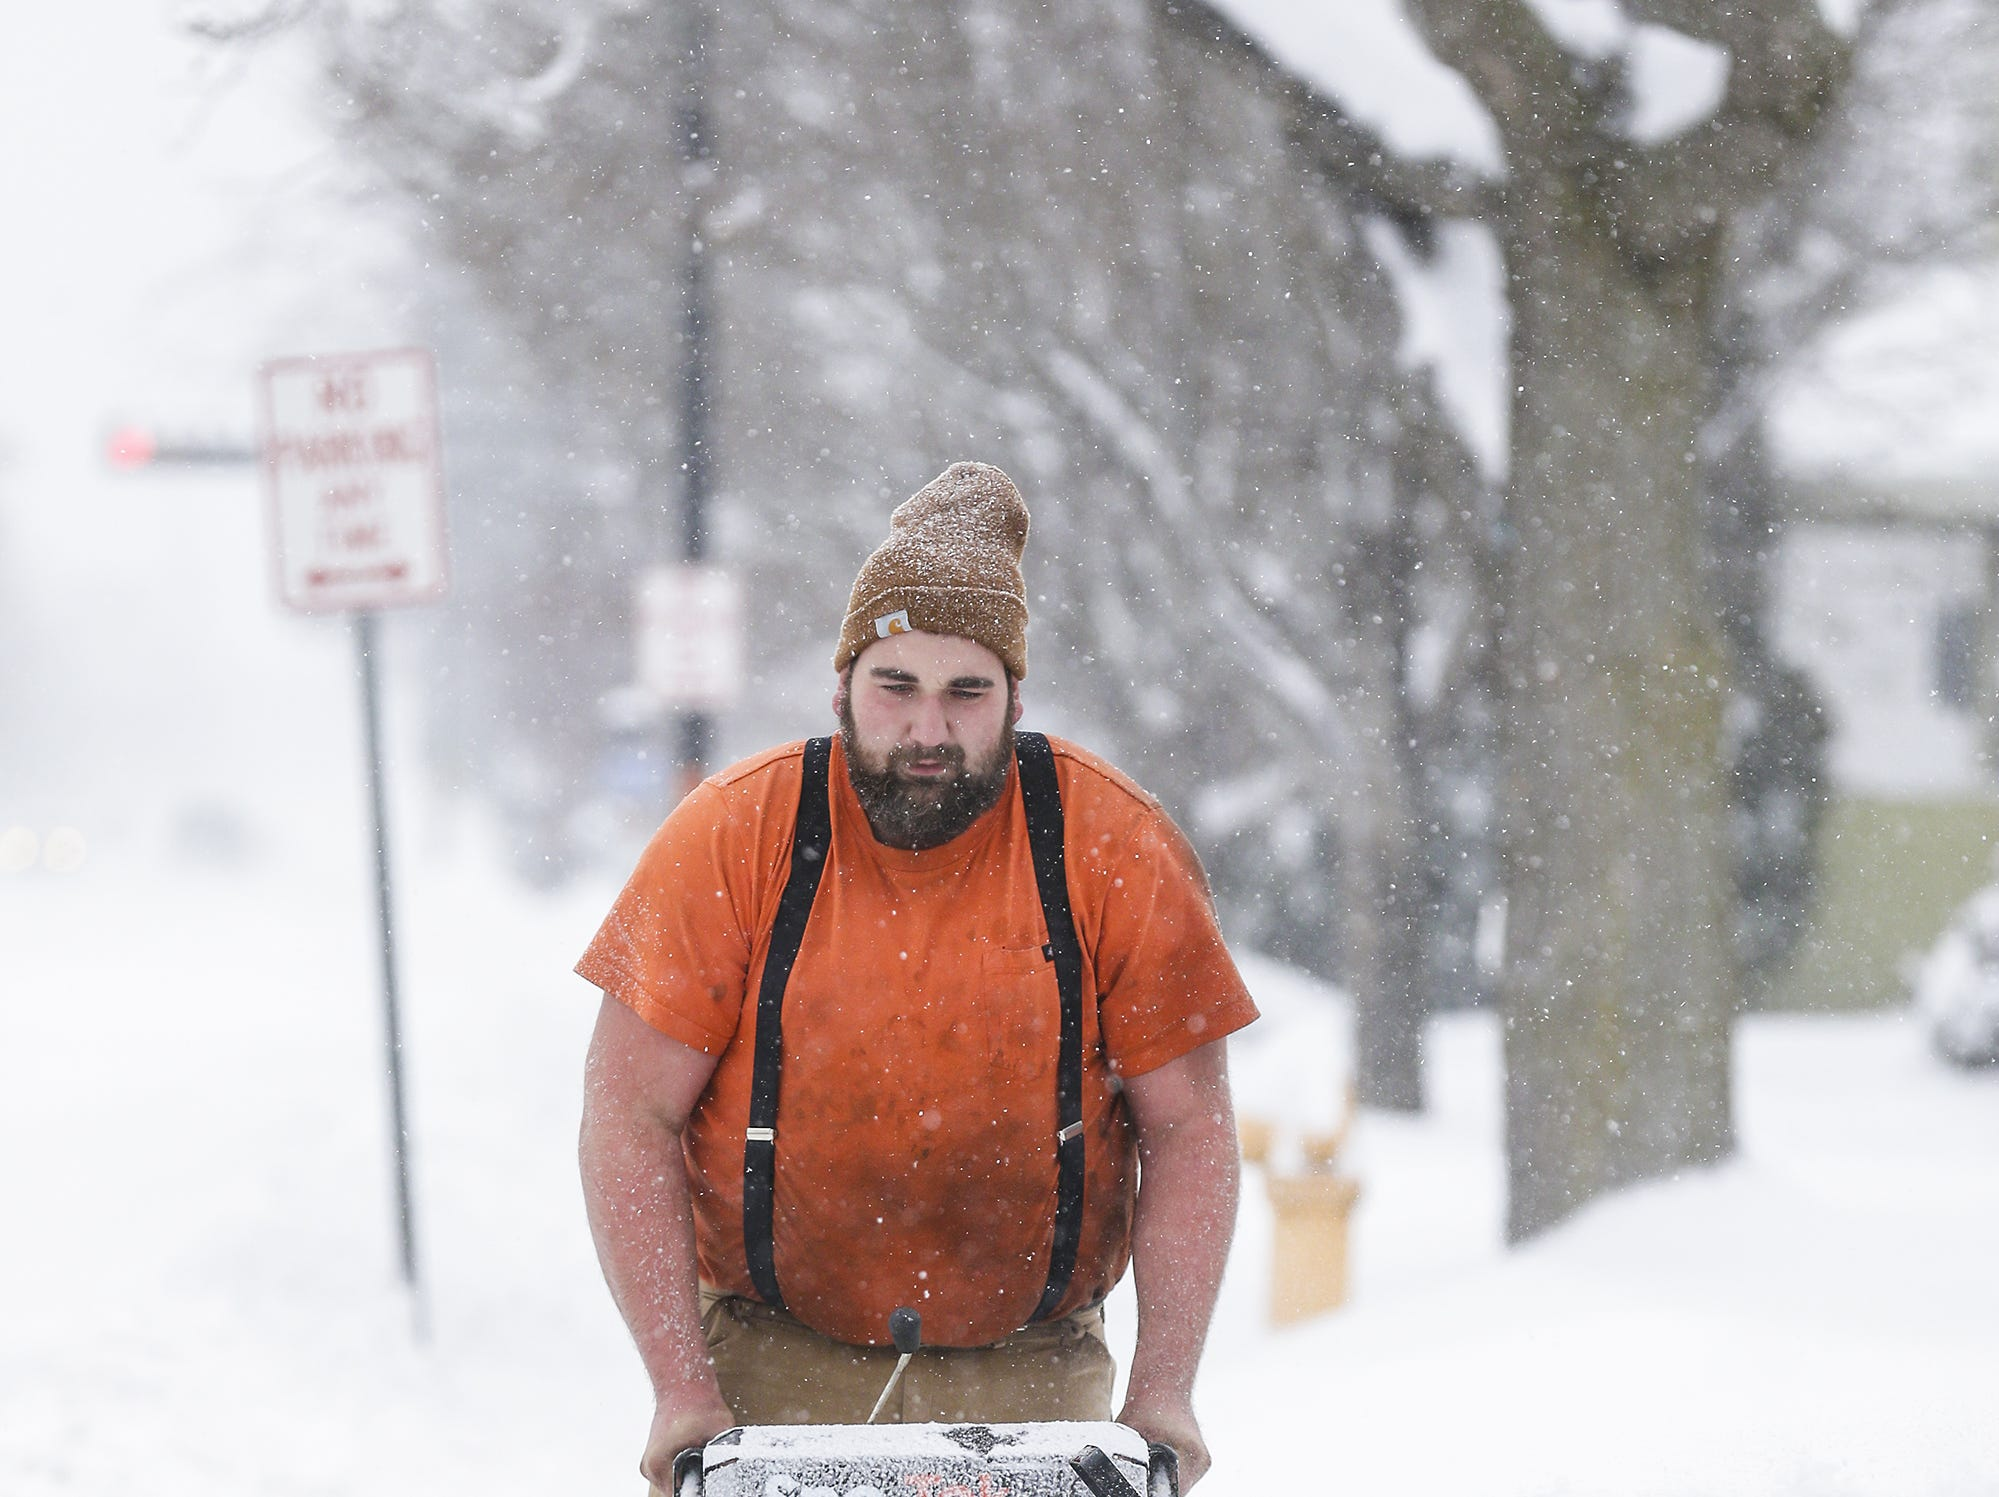 Jacob Schwefel of Fond du Lac snow blows the sidewalk in front of his Johnson Street home Monday, Jan. 28, 2019, during a snow storm that hampered travel and closed businesses and schools in the Fond du Lac area. This was the Fond du Lac areas second snow storm in five days.